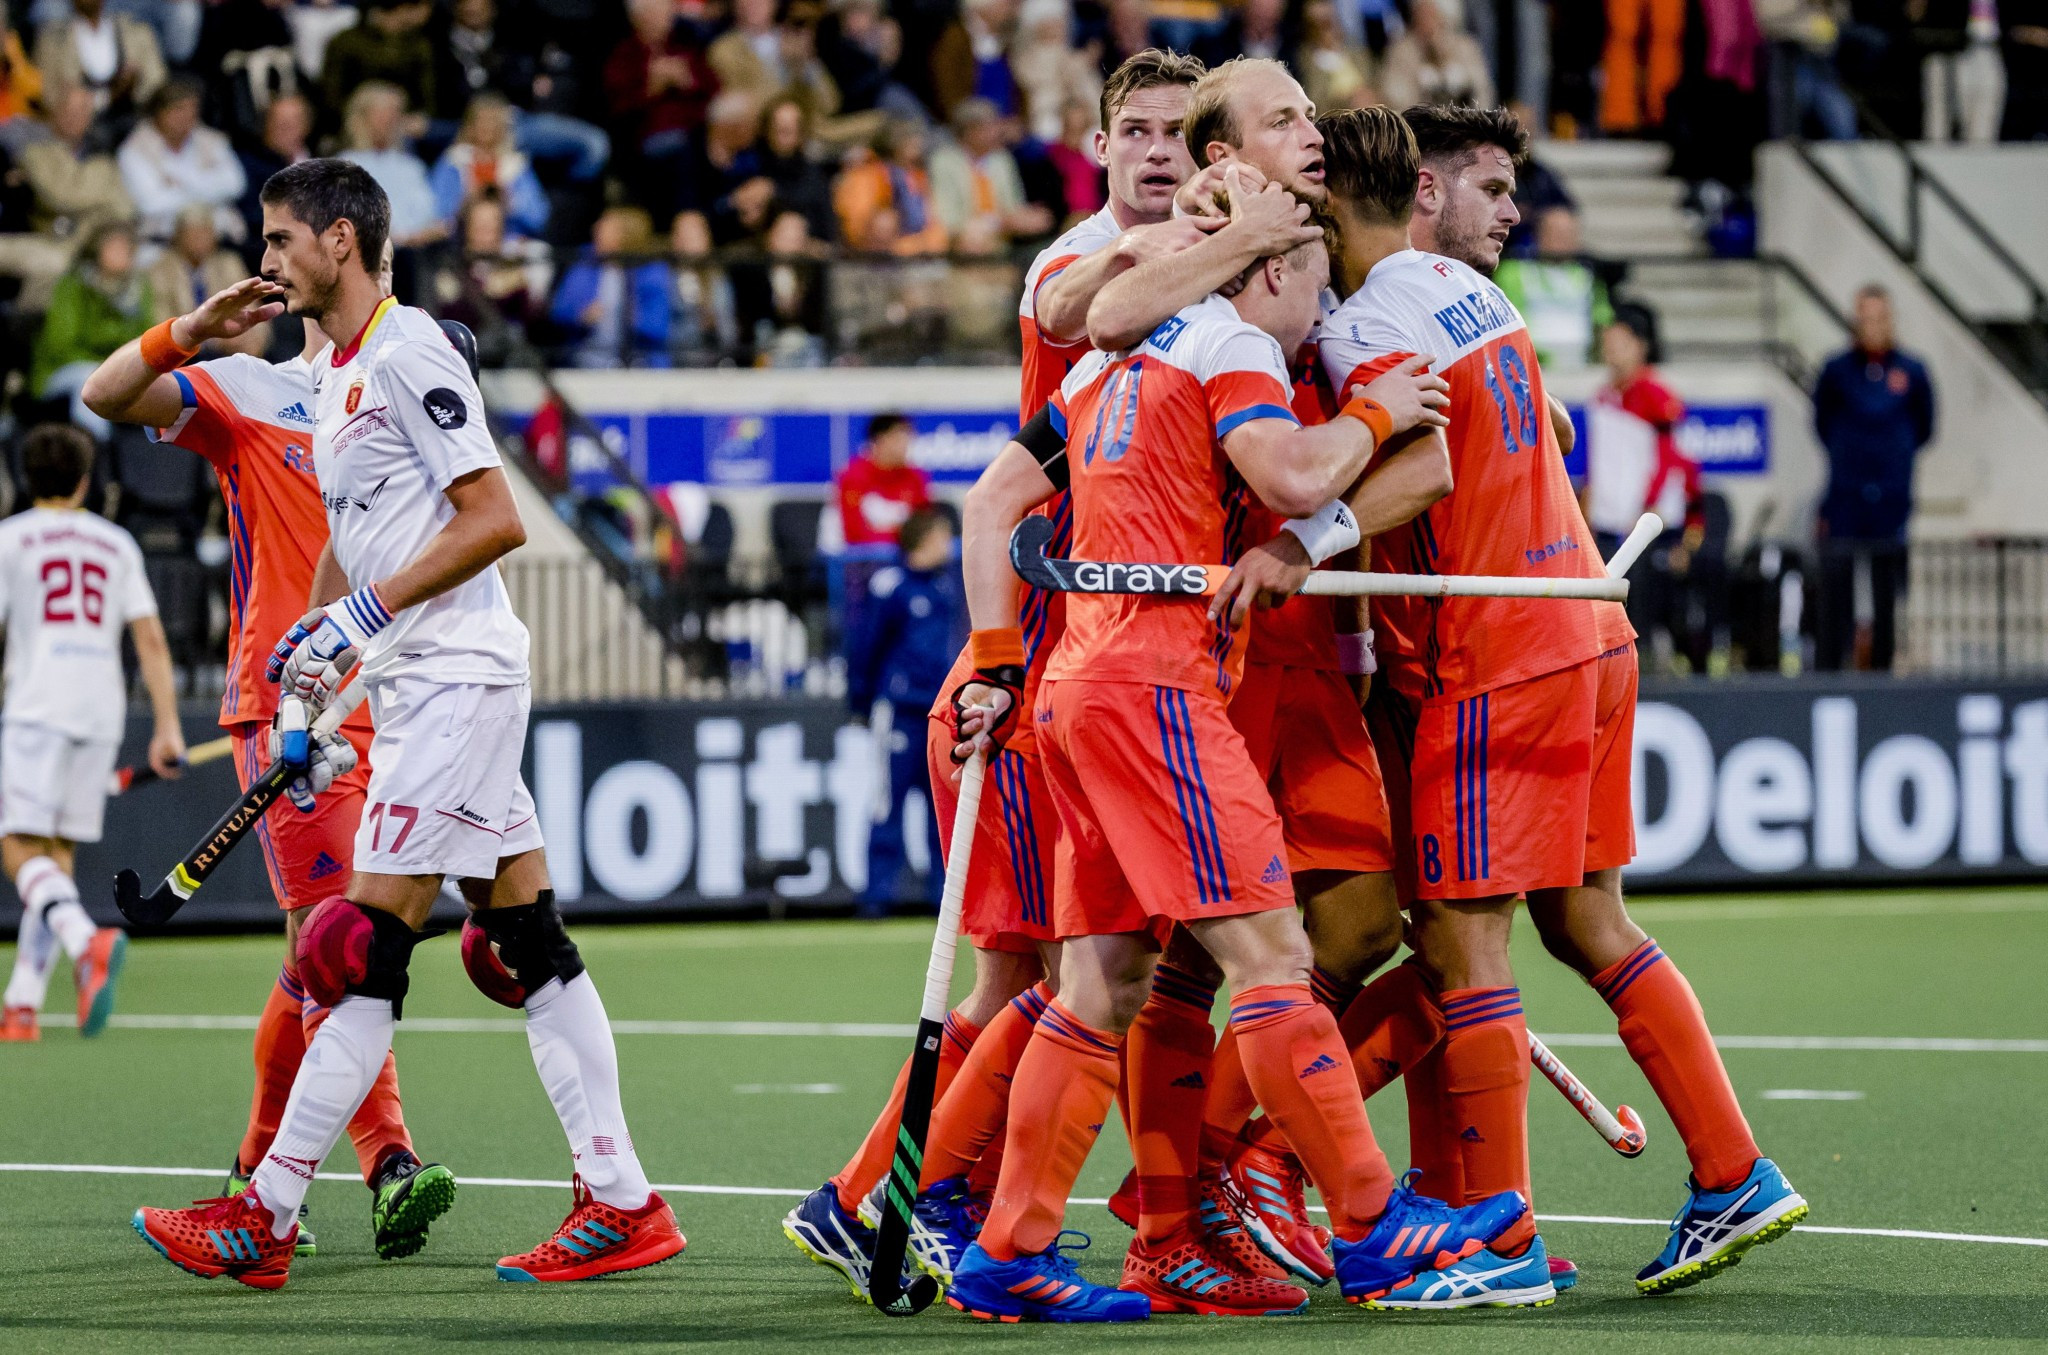 Dutch men start title defence at EuroHockey Championships with big win